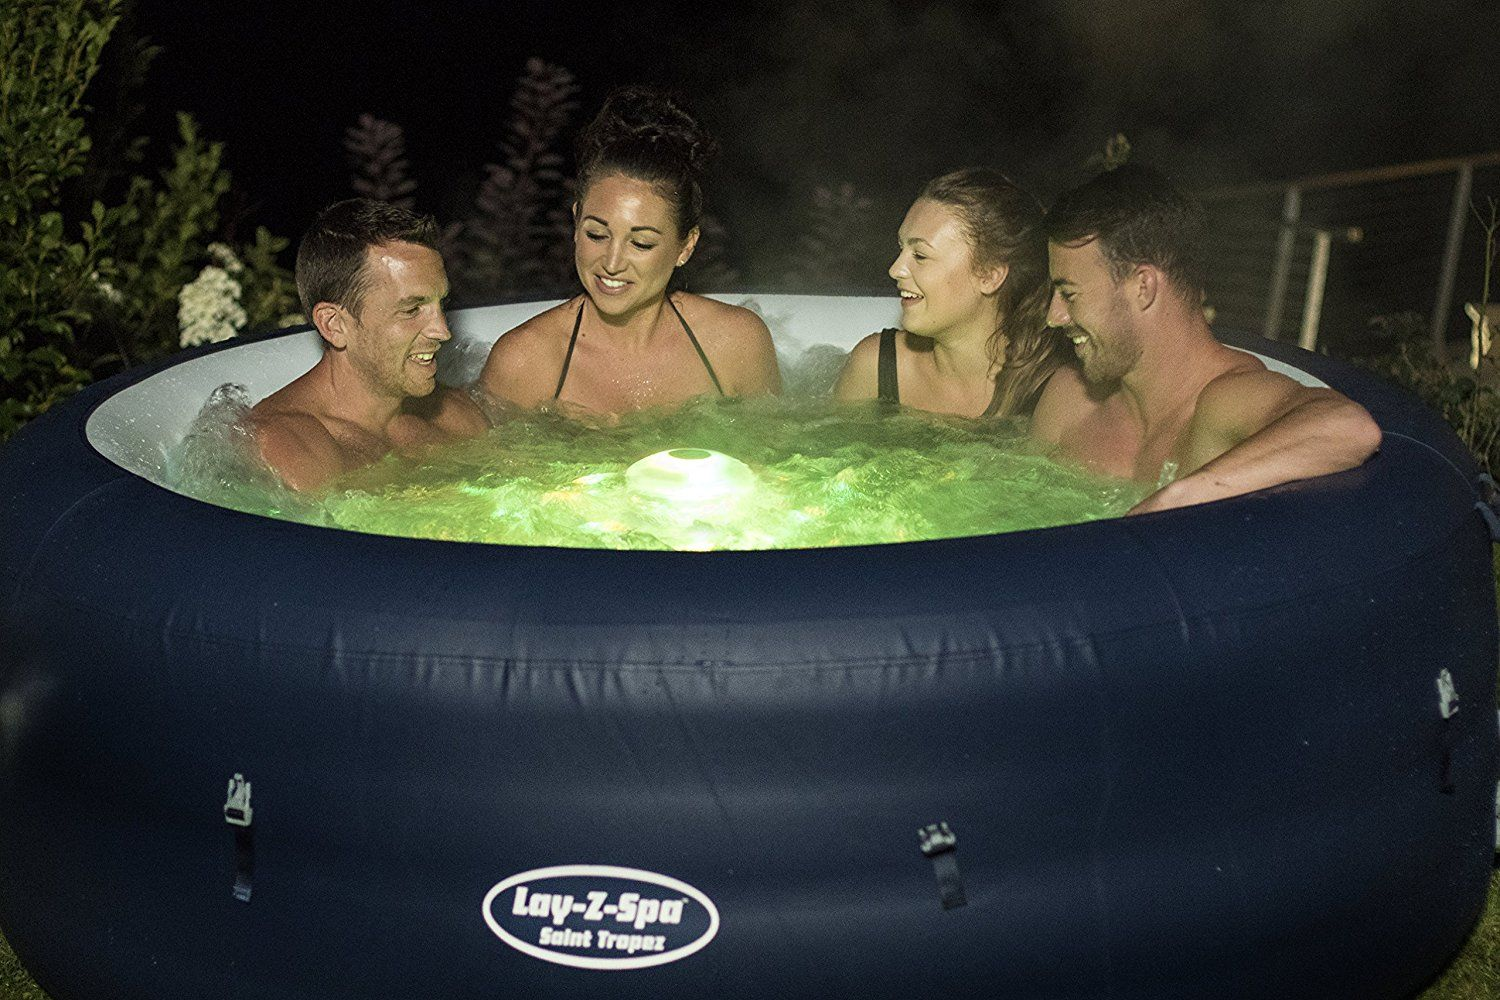 Lay-Z-Spa Saint Tropez Hot Tub Review Lay-Z-Spa is one of the ...